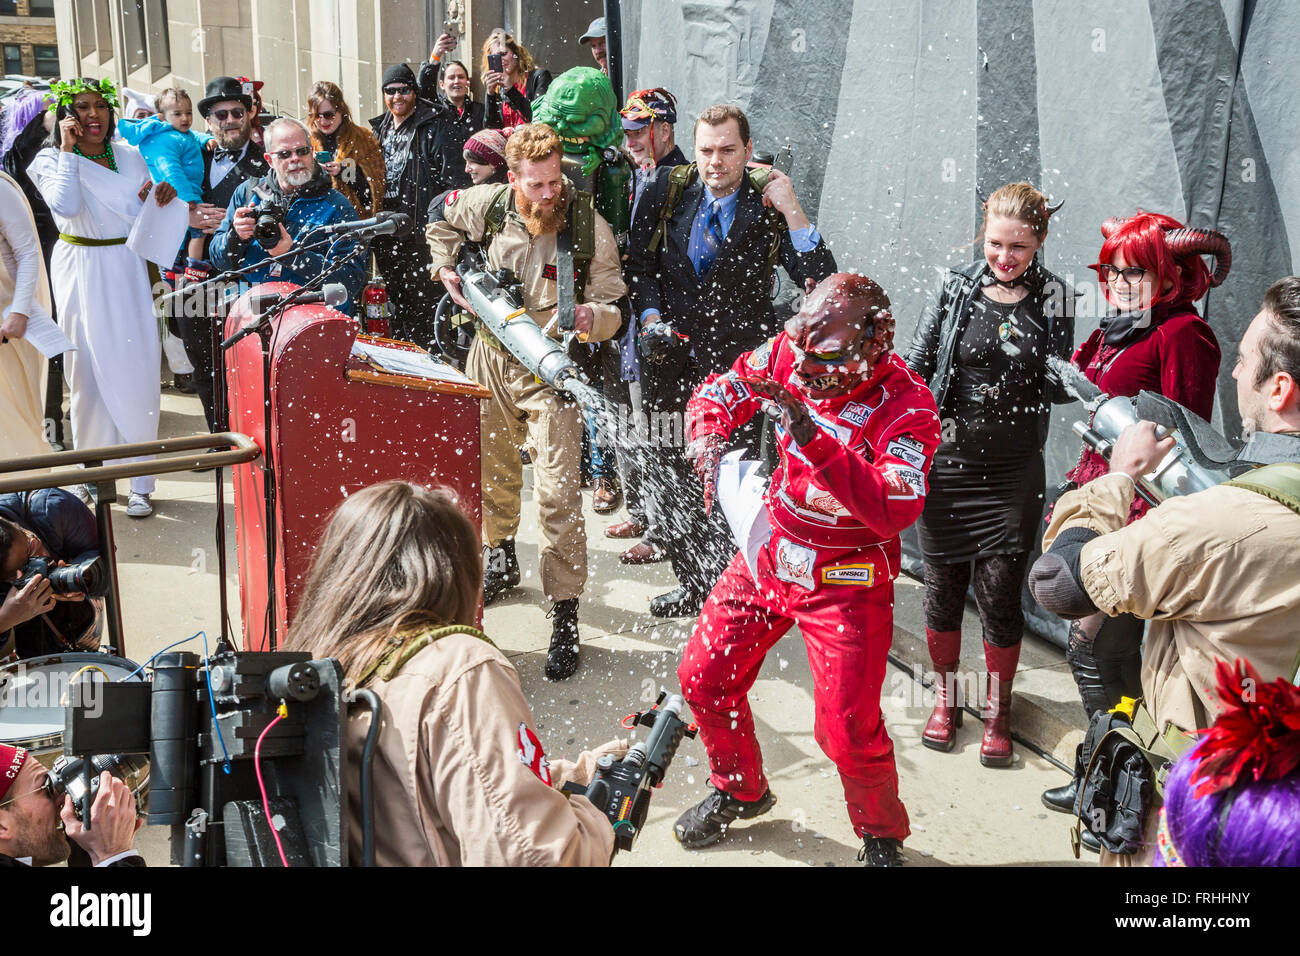 Detroit, Michigan - der Ghostbusters-Koalition von Detroit verbannt Nain Rouge (roter Zwerg) aus Detroit. Stockbild